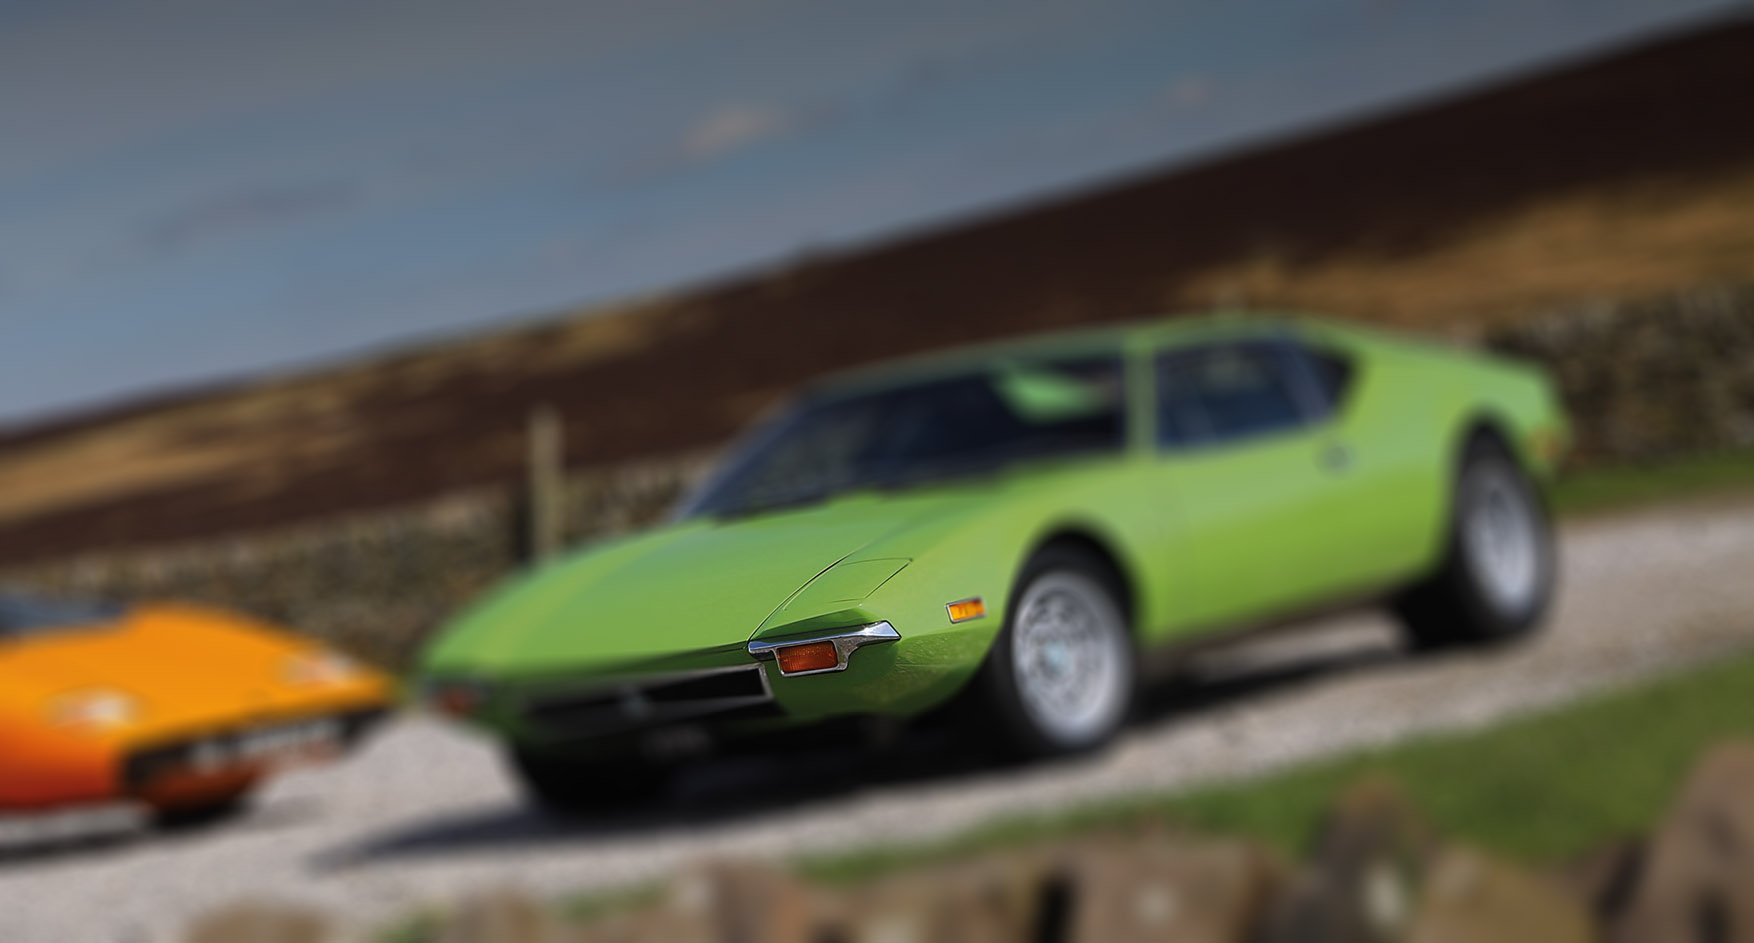 Pantera For Sale >> 1972 De Tomaso Pantera For Sale De Tomaso Uk Drivers Club